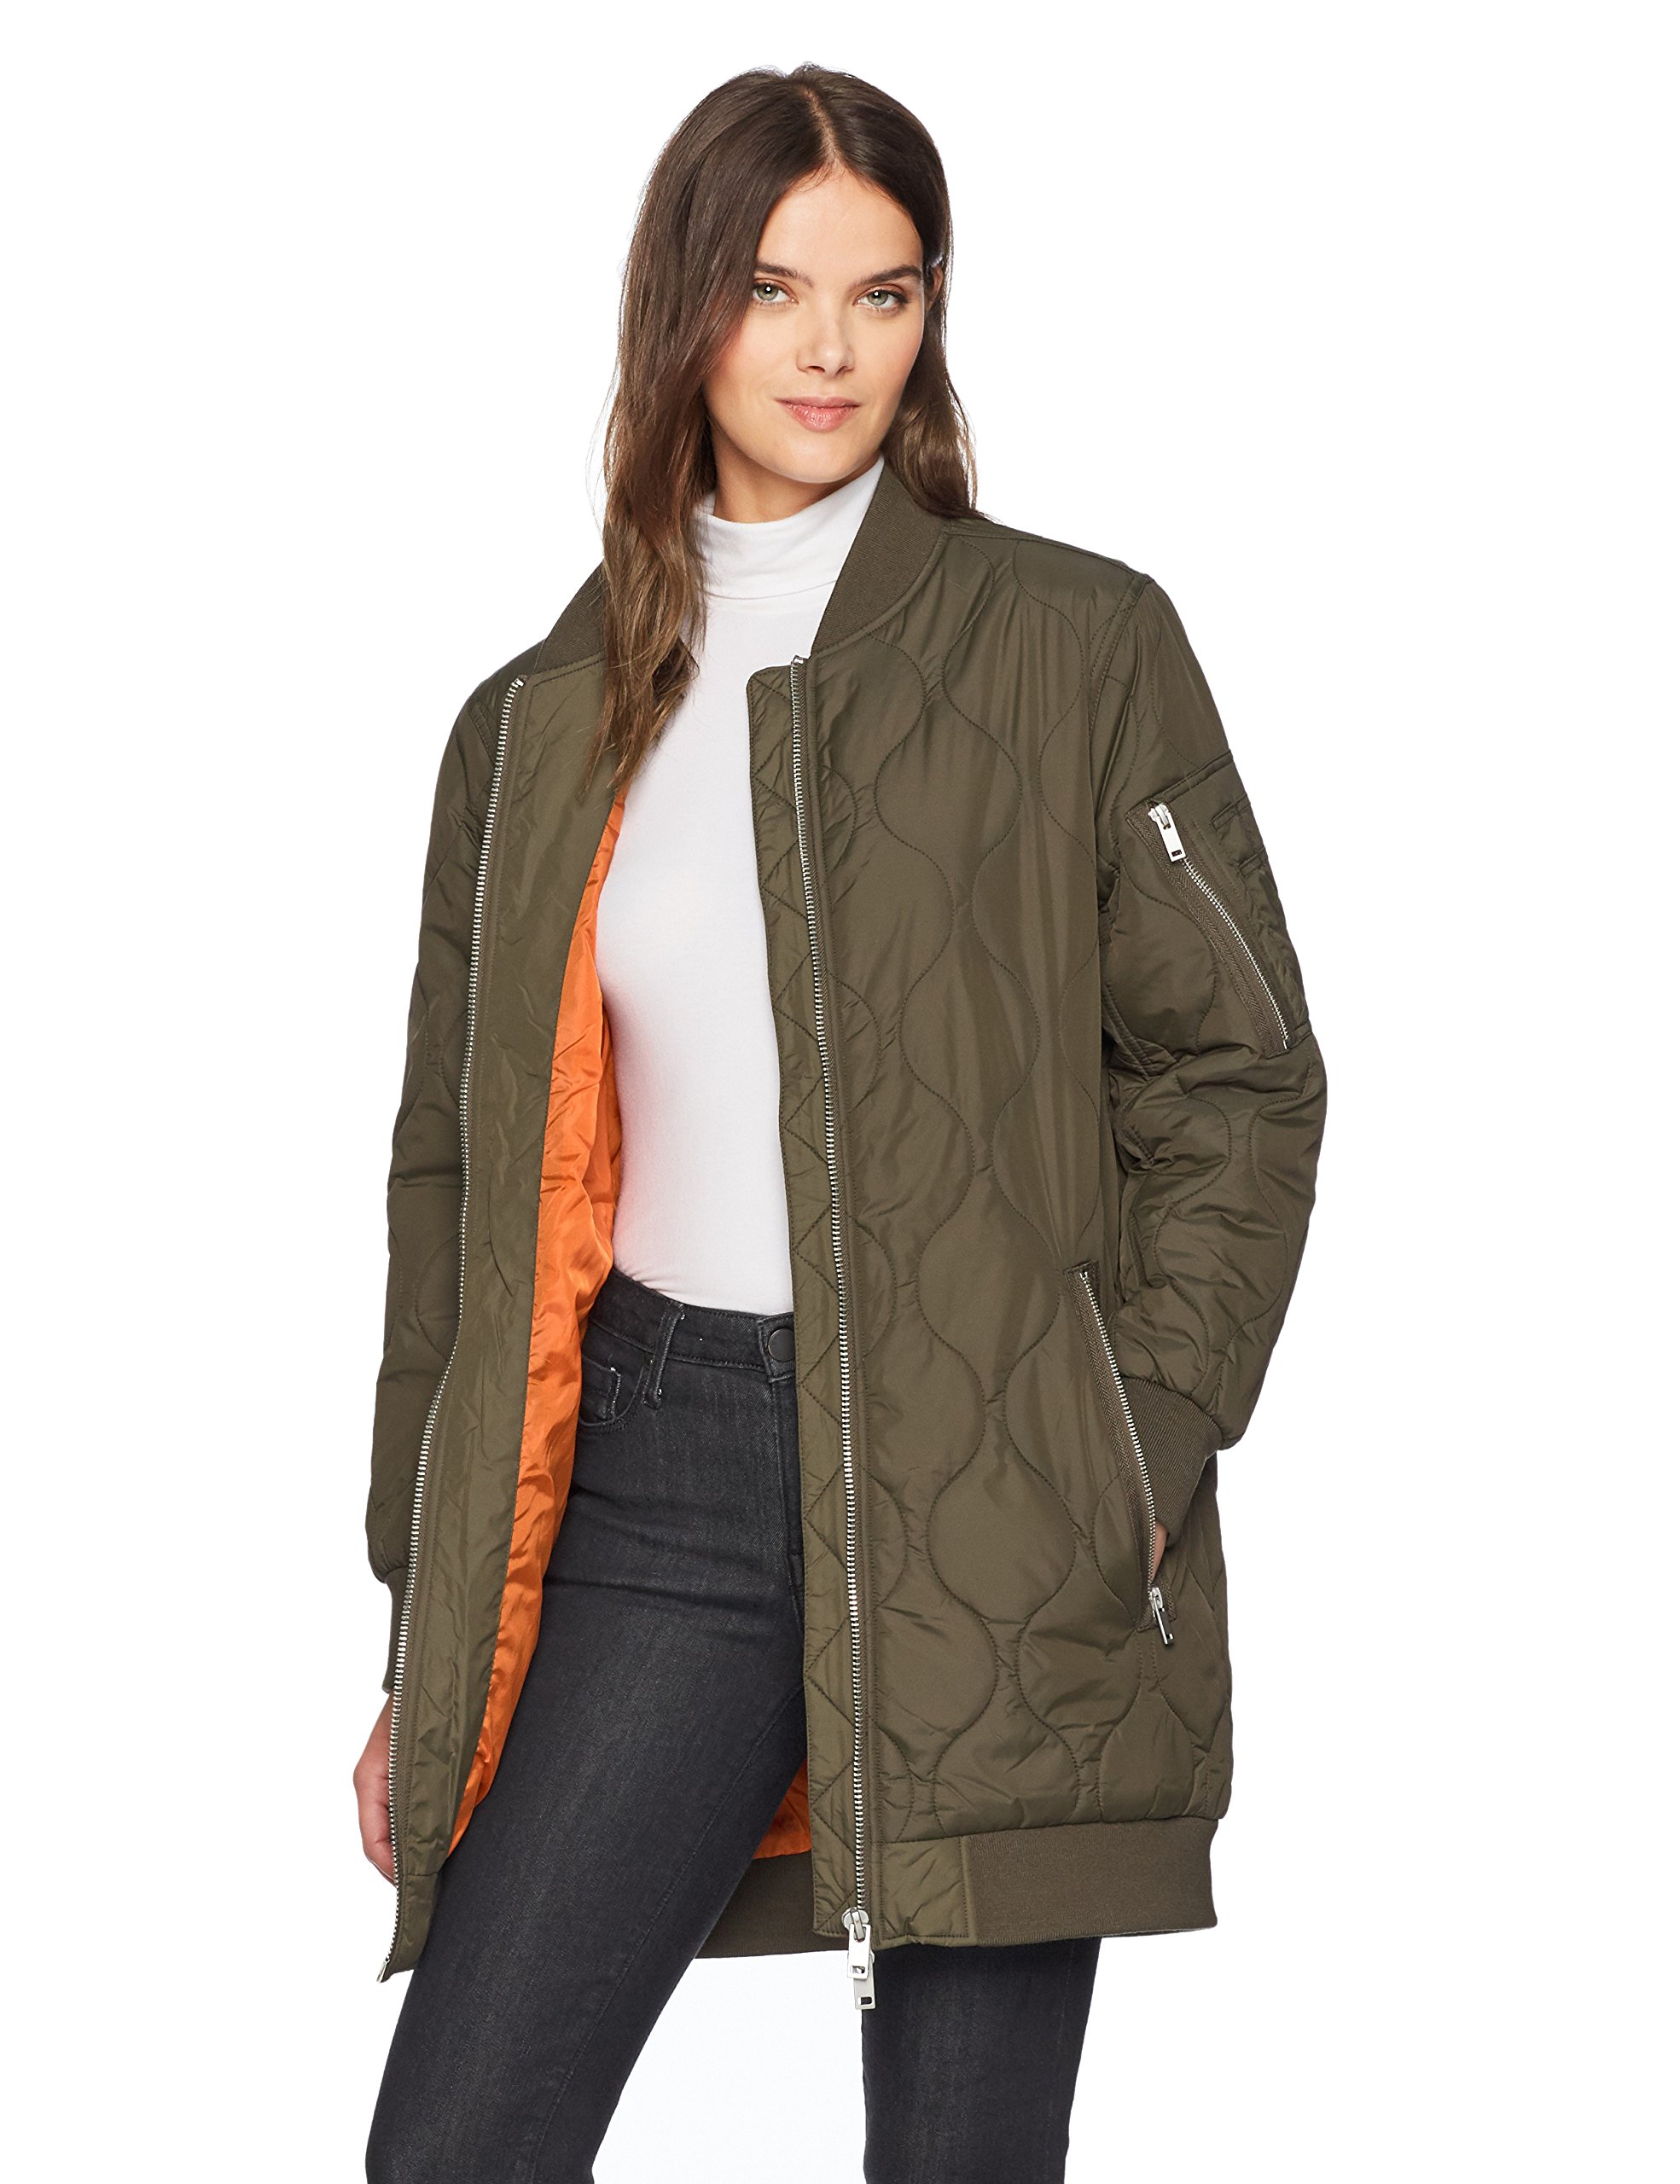 French Connection Women's Ardis Puffer Bomber Jacket, Dusty Olive, S by French Connection